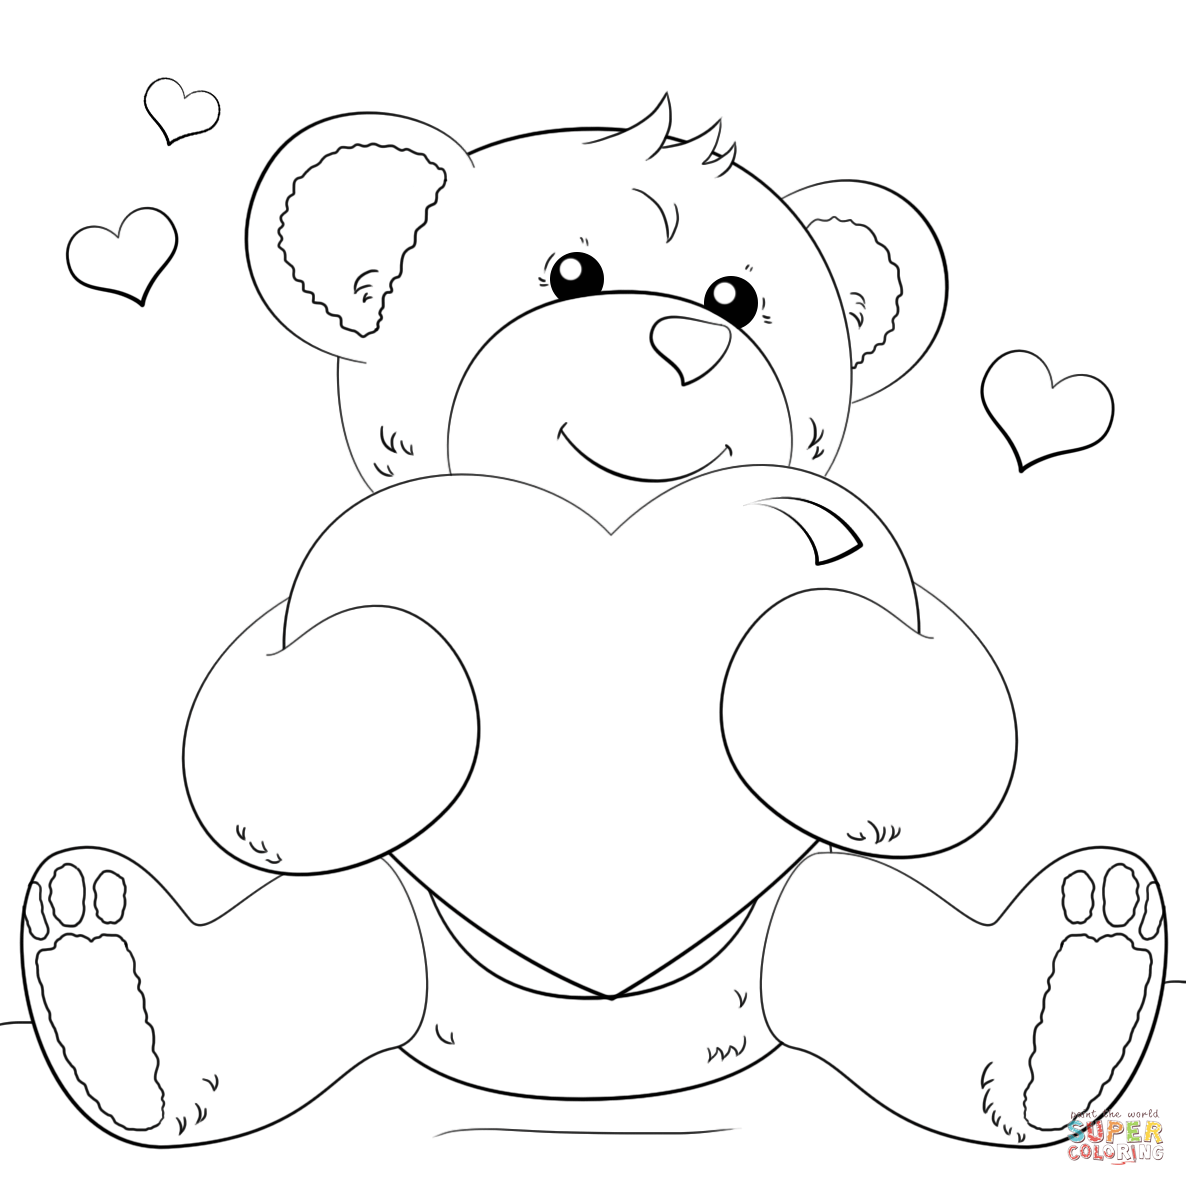 1186x1186 Heart Coloring Pages For Teenagers Day Book 8500 And Hearts